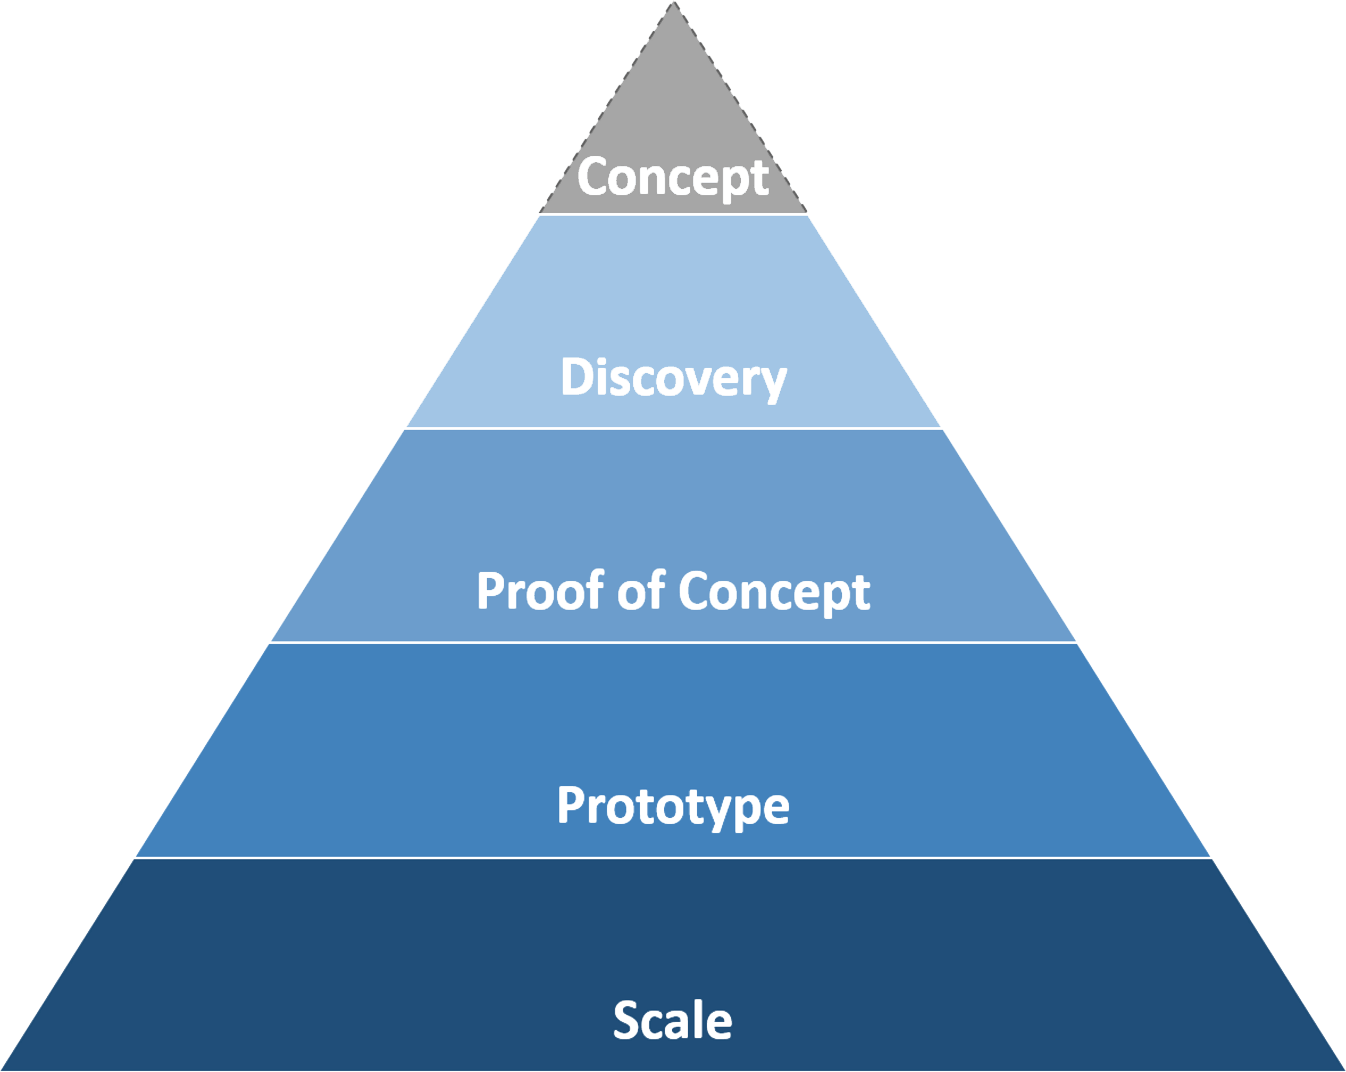 List of steps in the agile approach: Concept, Discovery, Proof of Concept, Prototype, and Scale